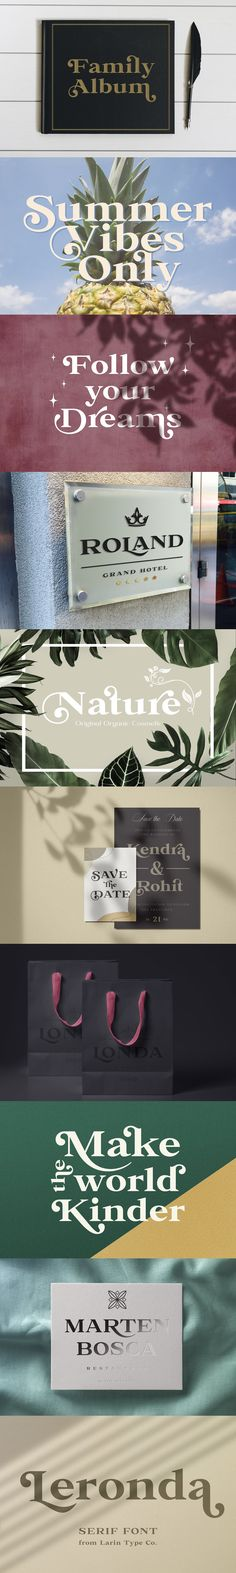 Leronda is an awesome font that can look austere and classic or vintage and softer and more pliable thanks to alternatives. They will add charisma, diversity to Best Serif Fonts, International Symbols, Uppercase And Lowercase, Family Album, Create A Logo, Cool Fonts, Summer Vibes, Thankful, Branding